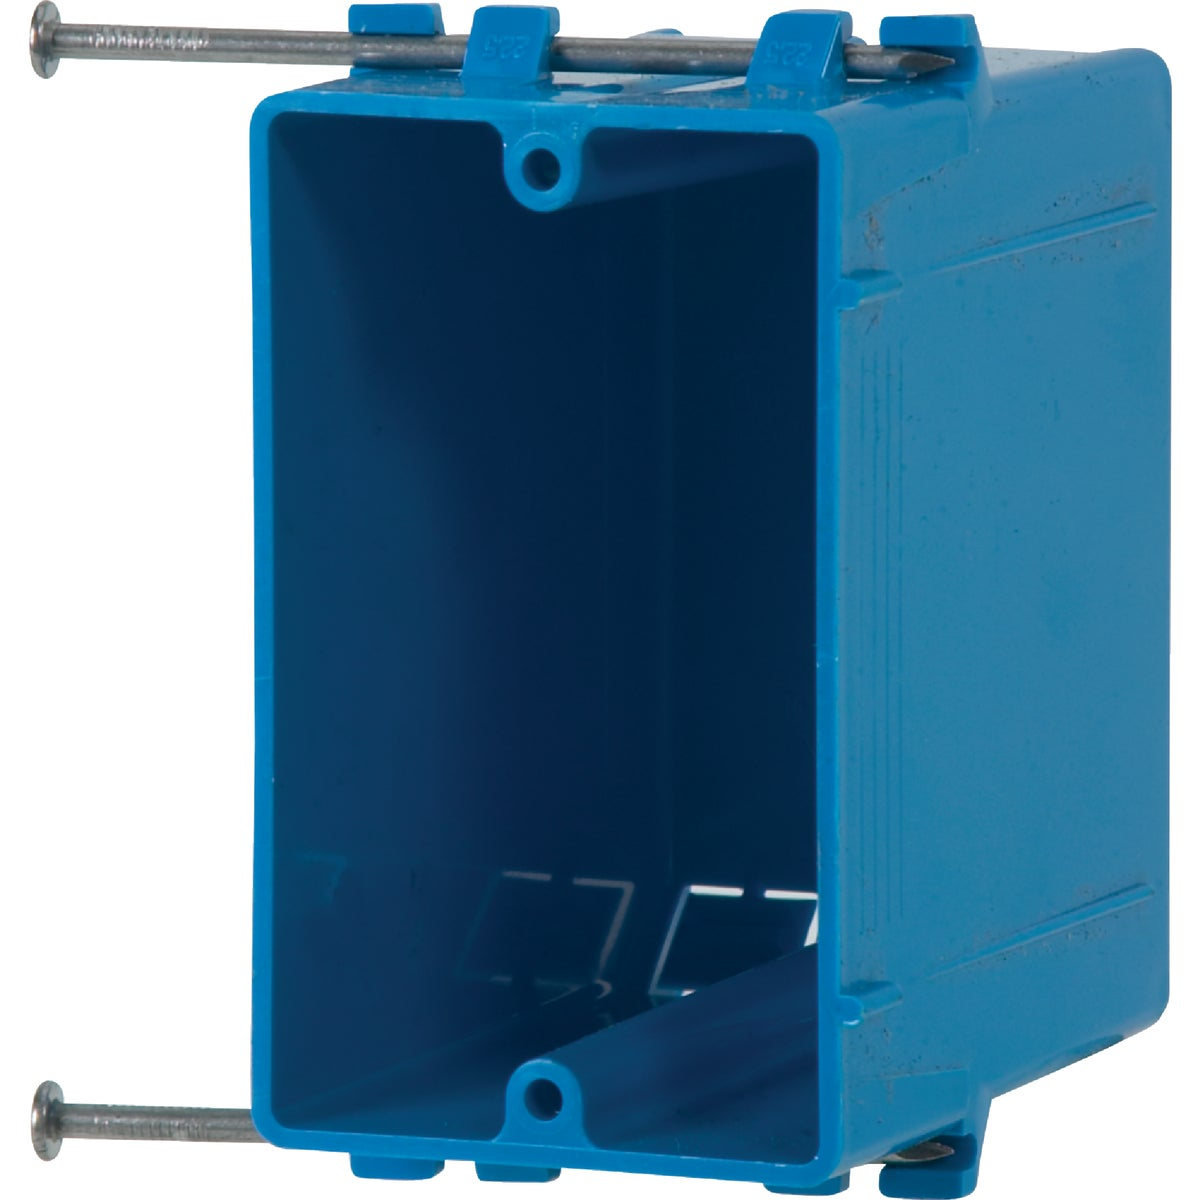 1 GANG SWITCH BOX - B122AUPC by Thomas & Betts